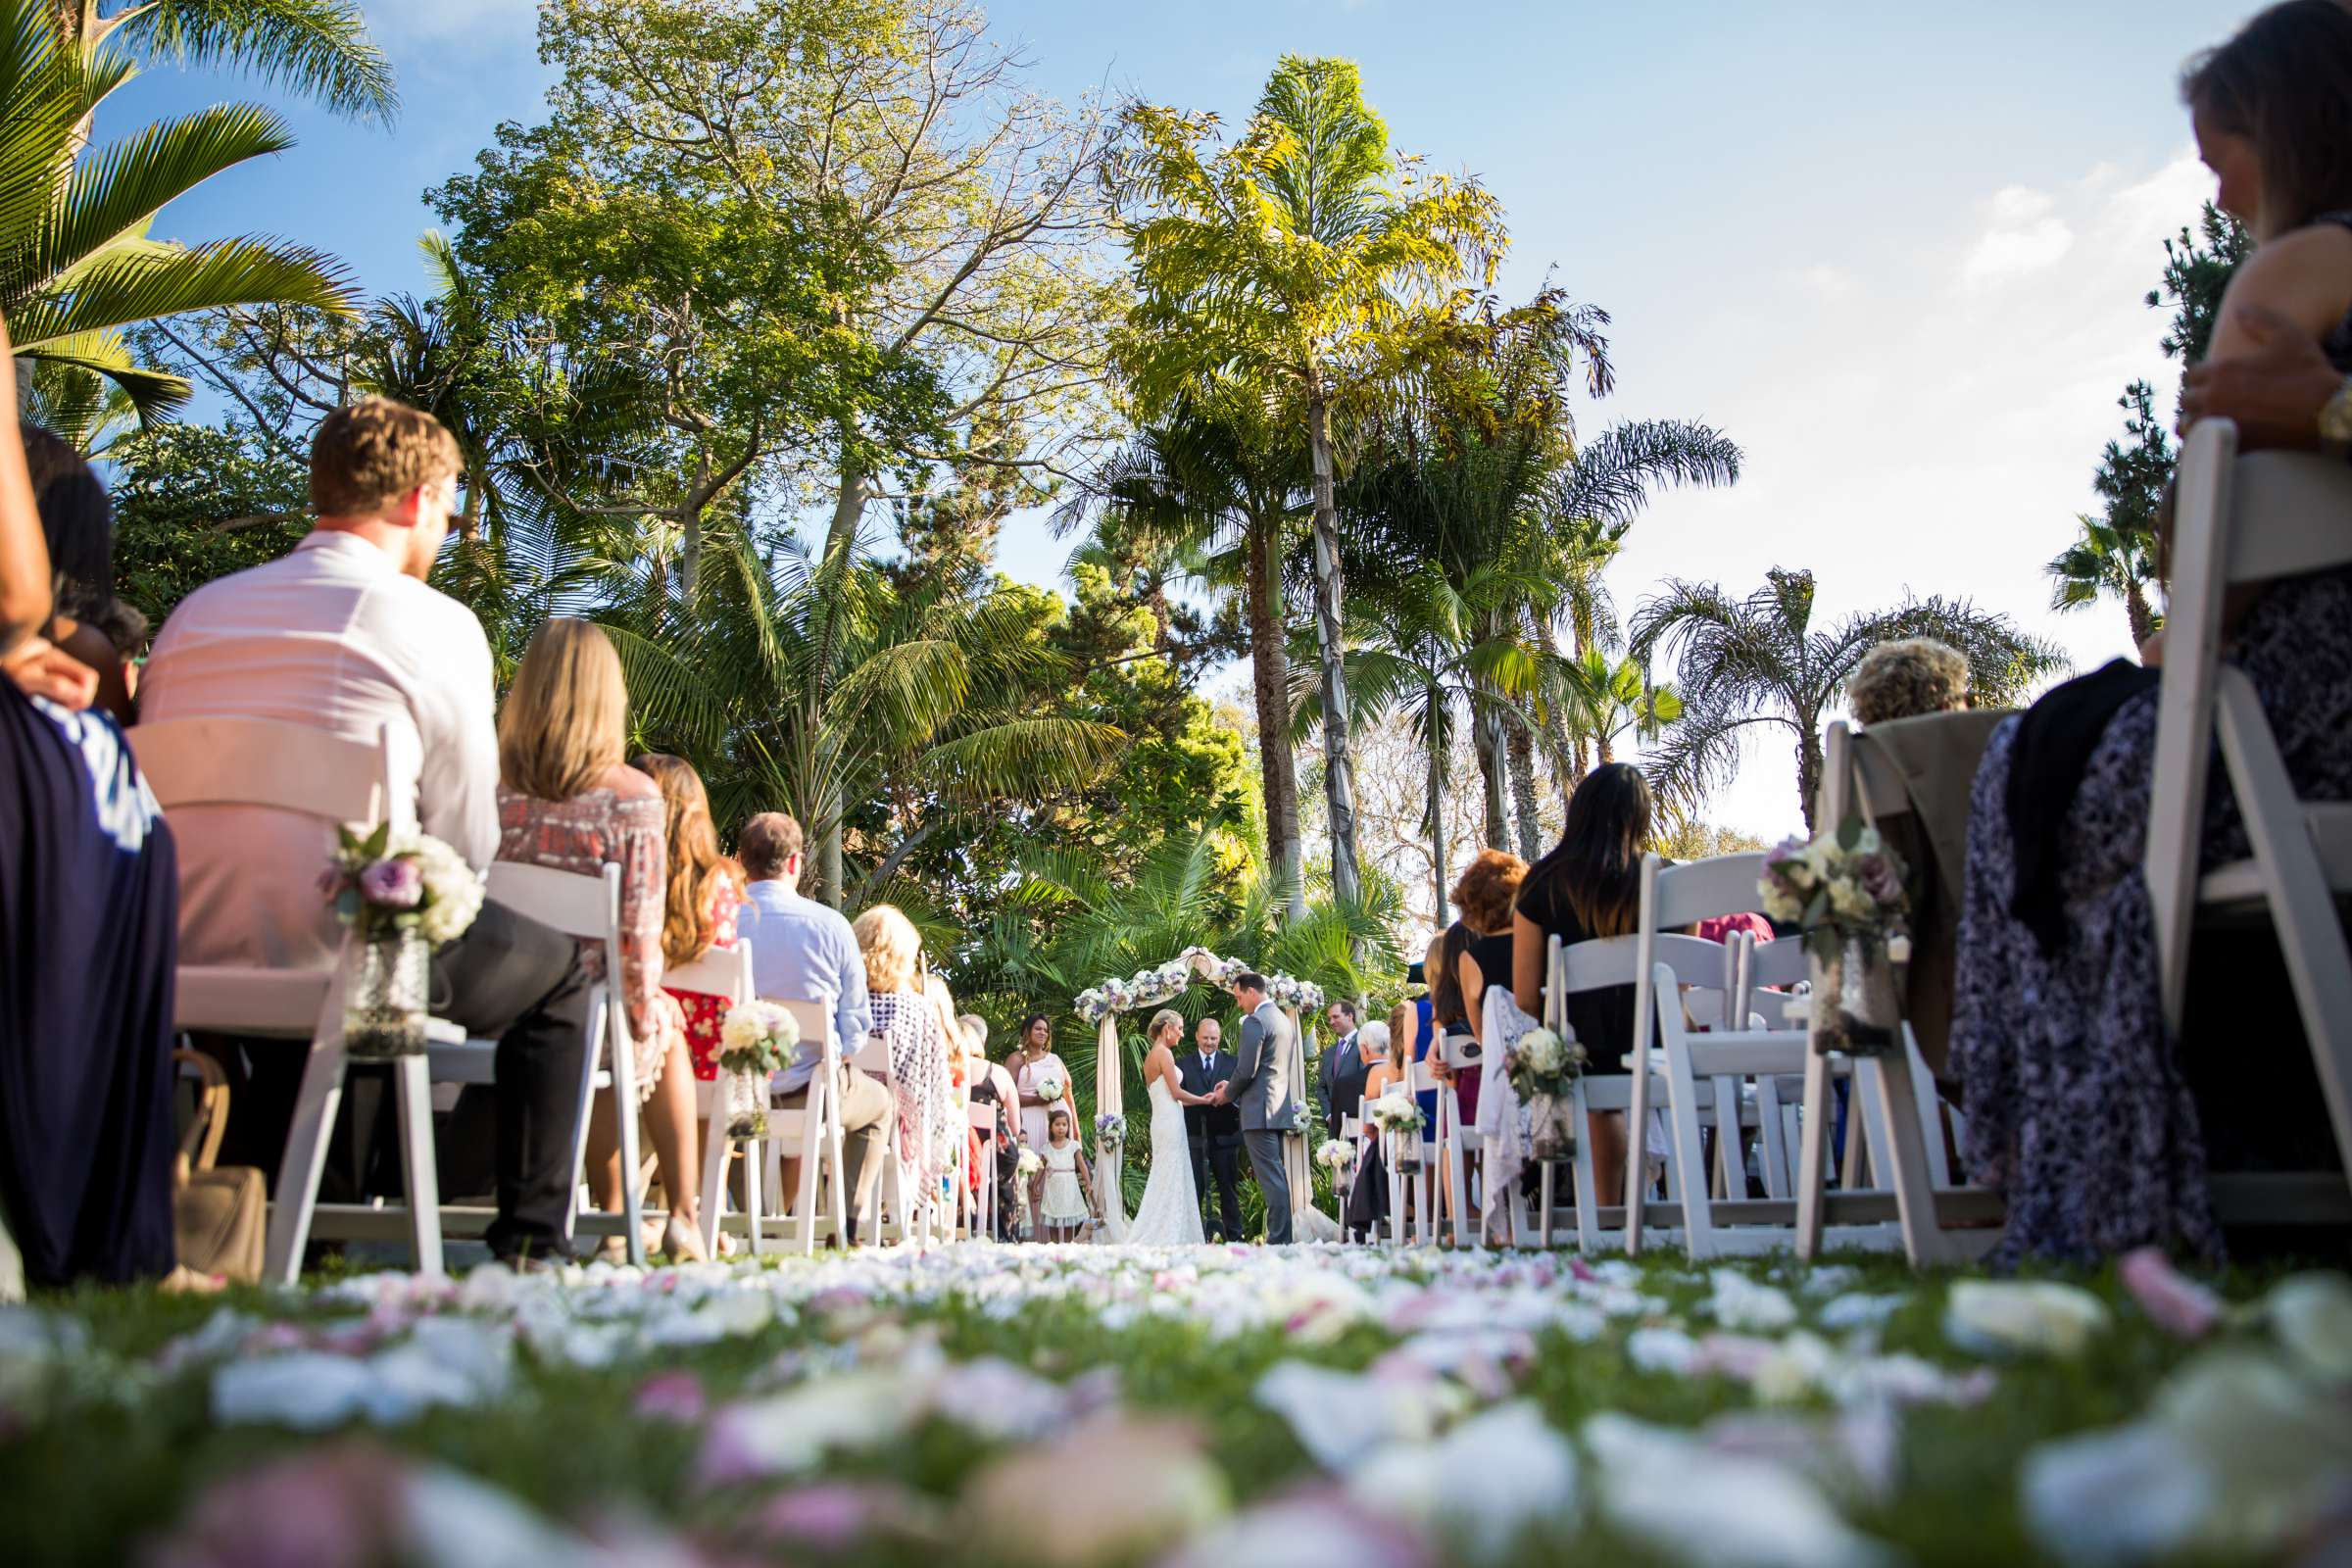 Paradise Point Wedding, Kimberly and Michael Wedding Photo #48 by True Photography